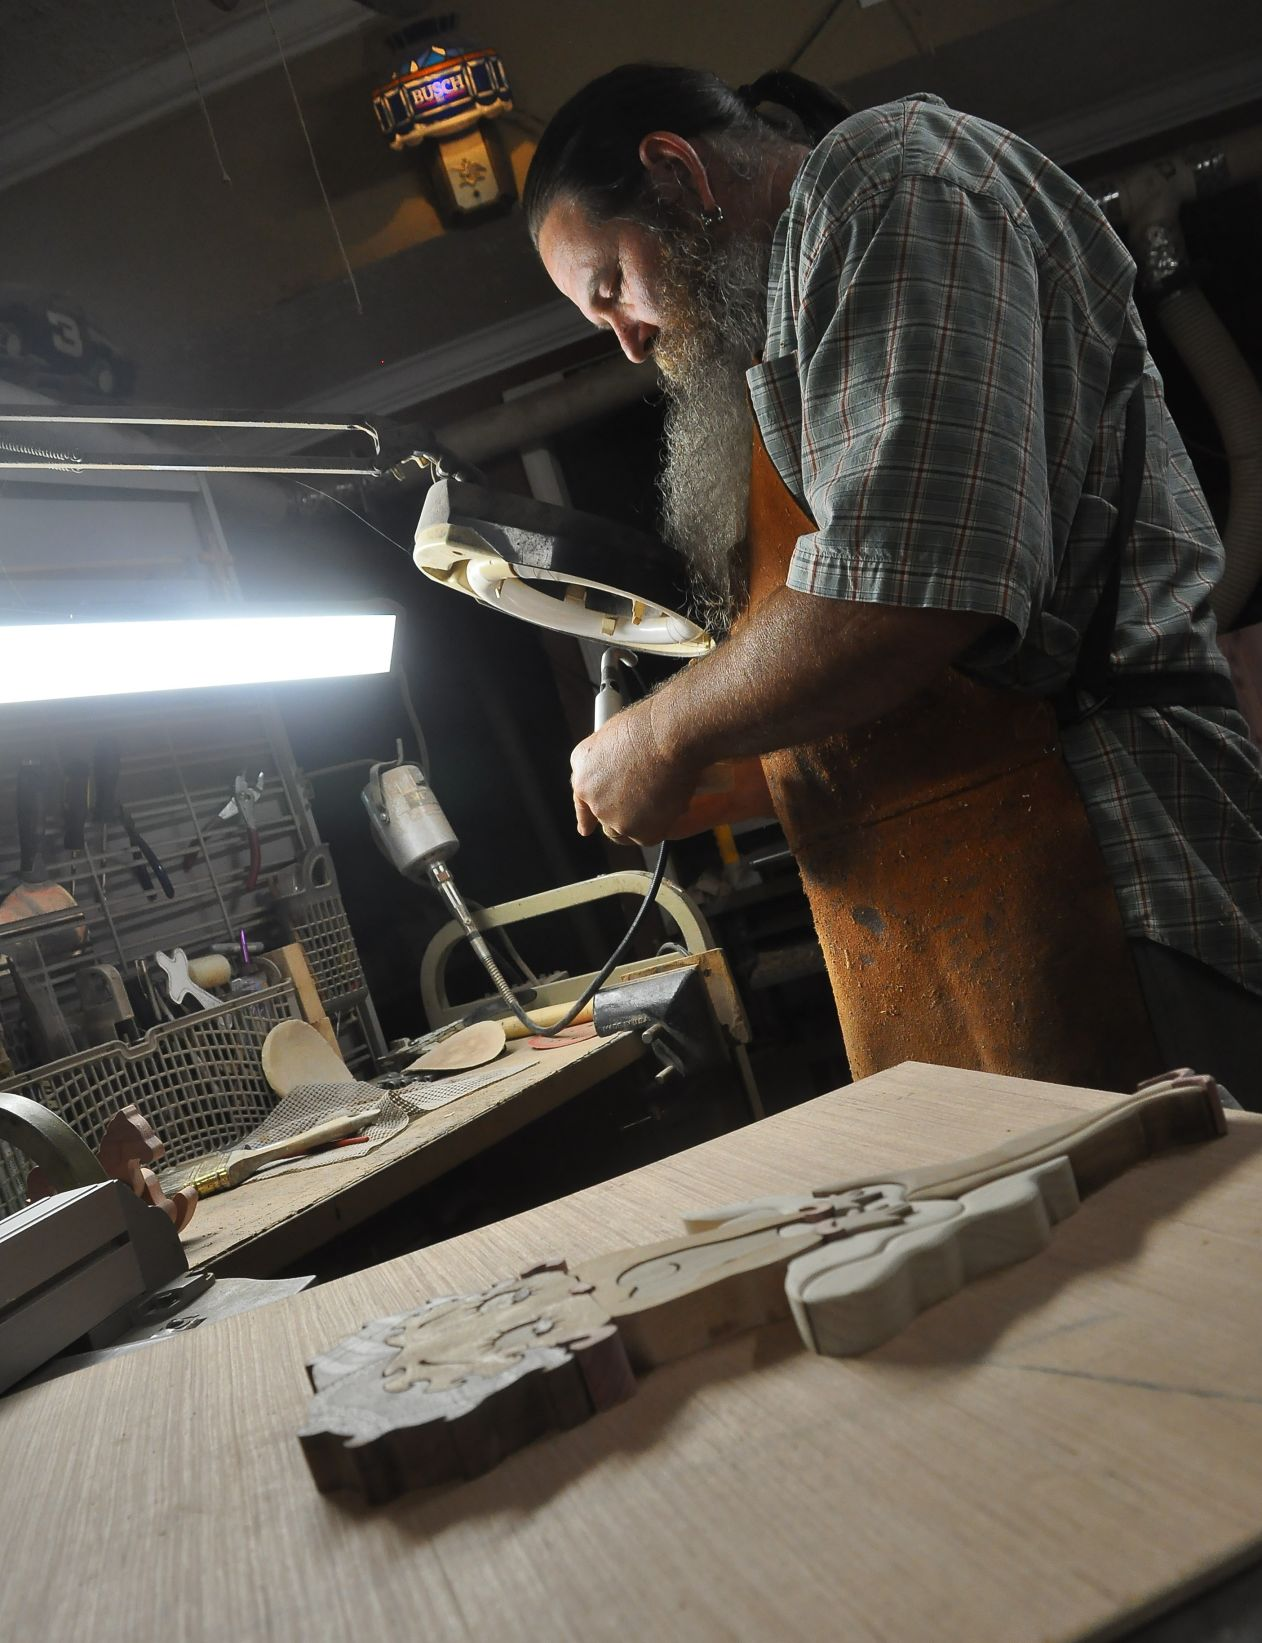 Working with the grain: Local woodworker gives an inside look at his craft